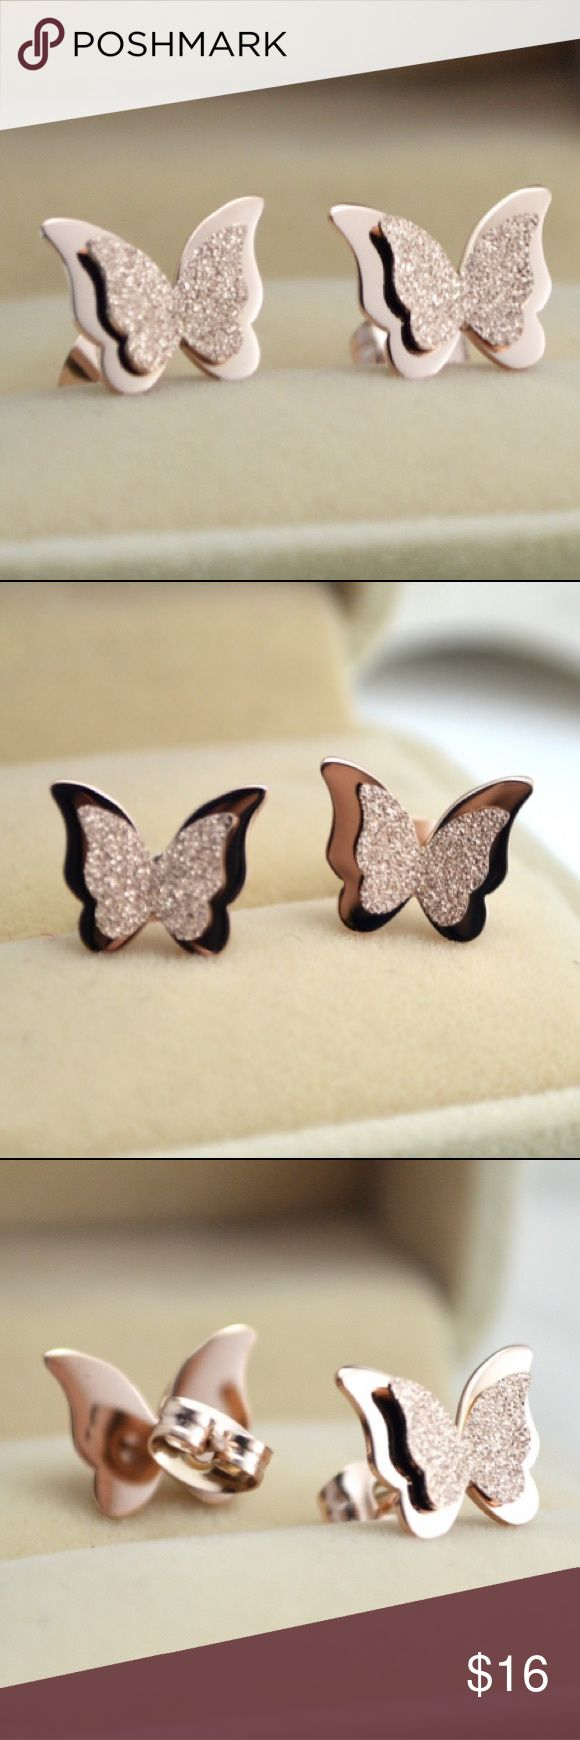 JUST IN  Rosegold Plated Butterfly Earrings JUST IN! Boutique=Brand New                            Material: Rosegold Plated Titanium                           Earrings Only. Box Is Not Included                           ❤Bundle 2+ Items For Discount ❤No Trades Jewelry Earrings